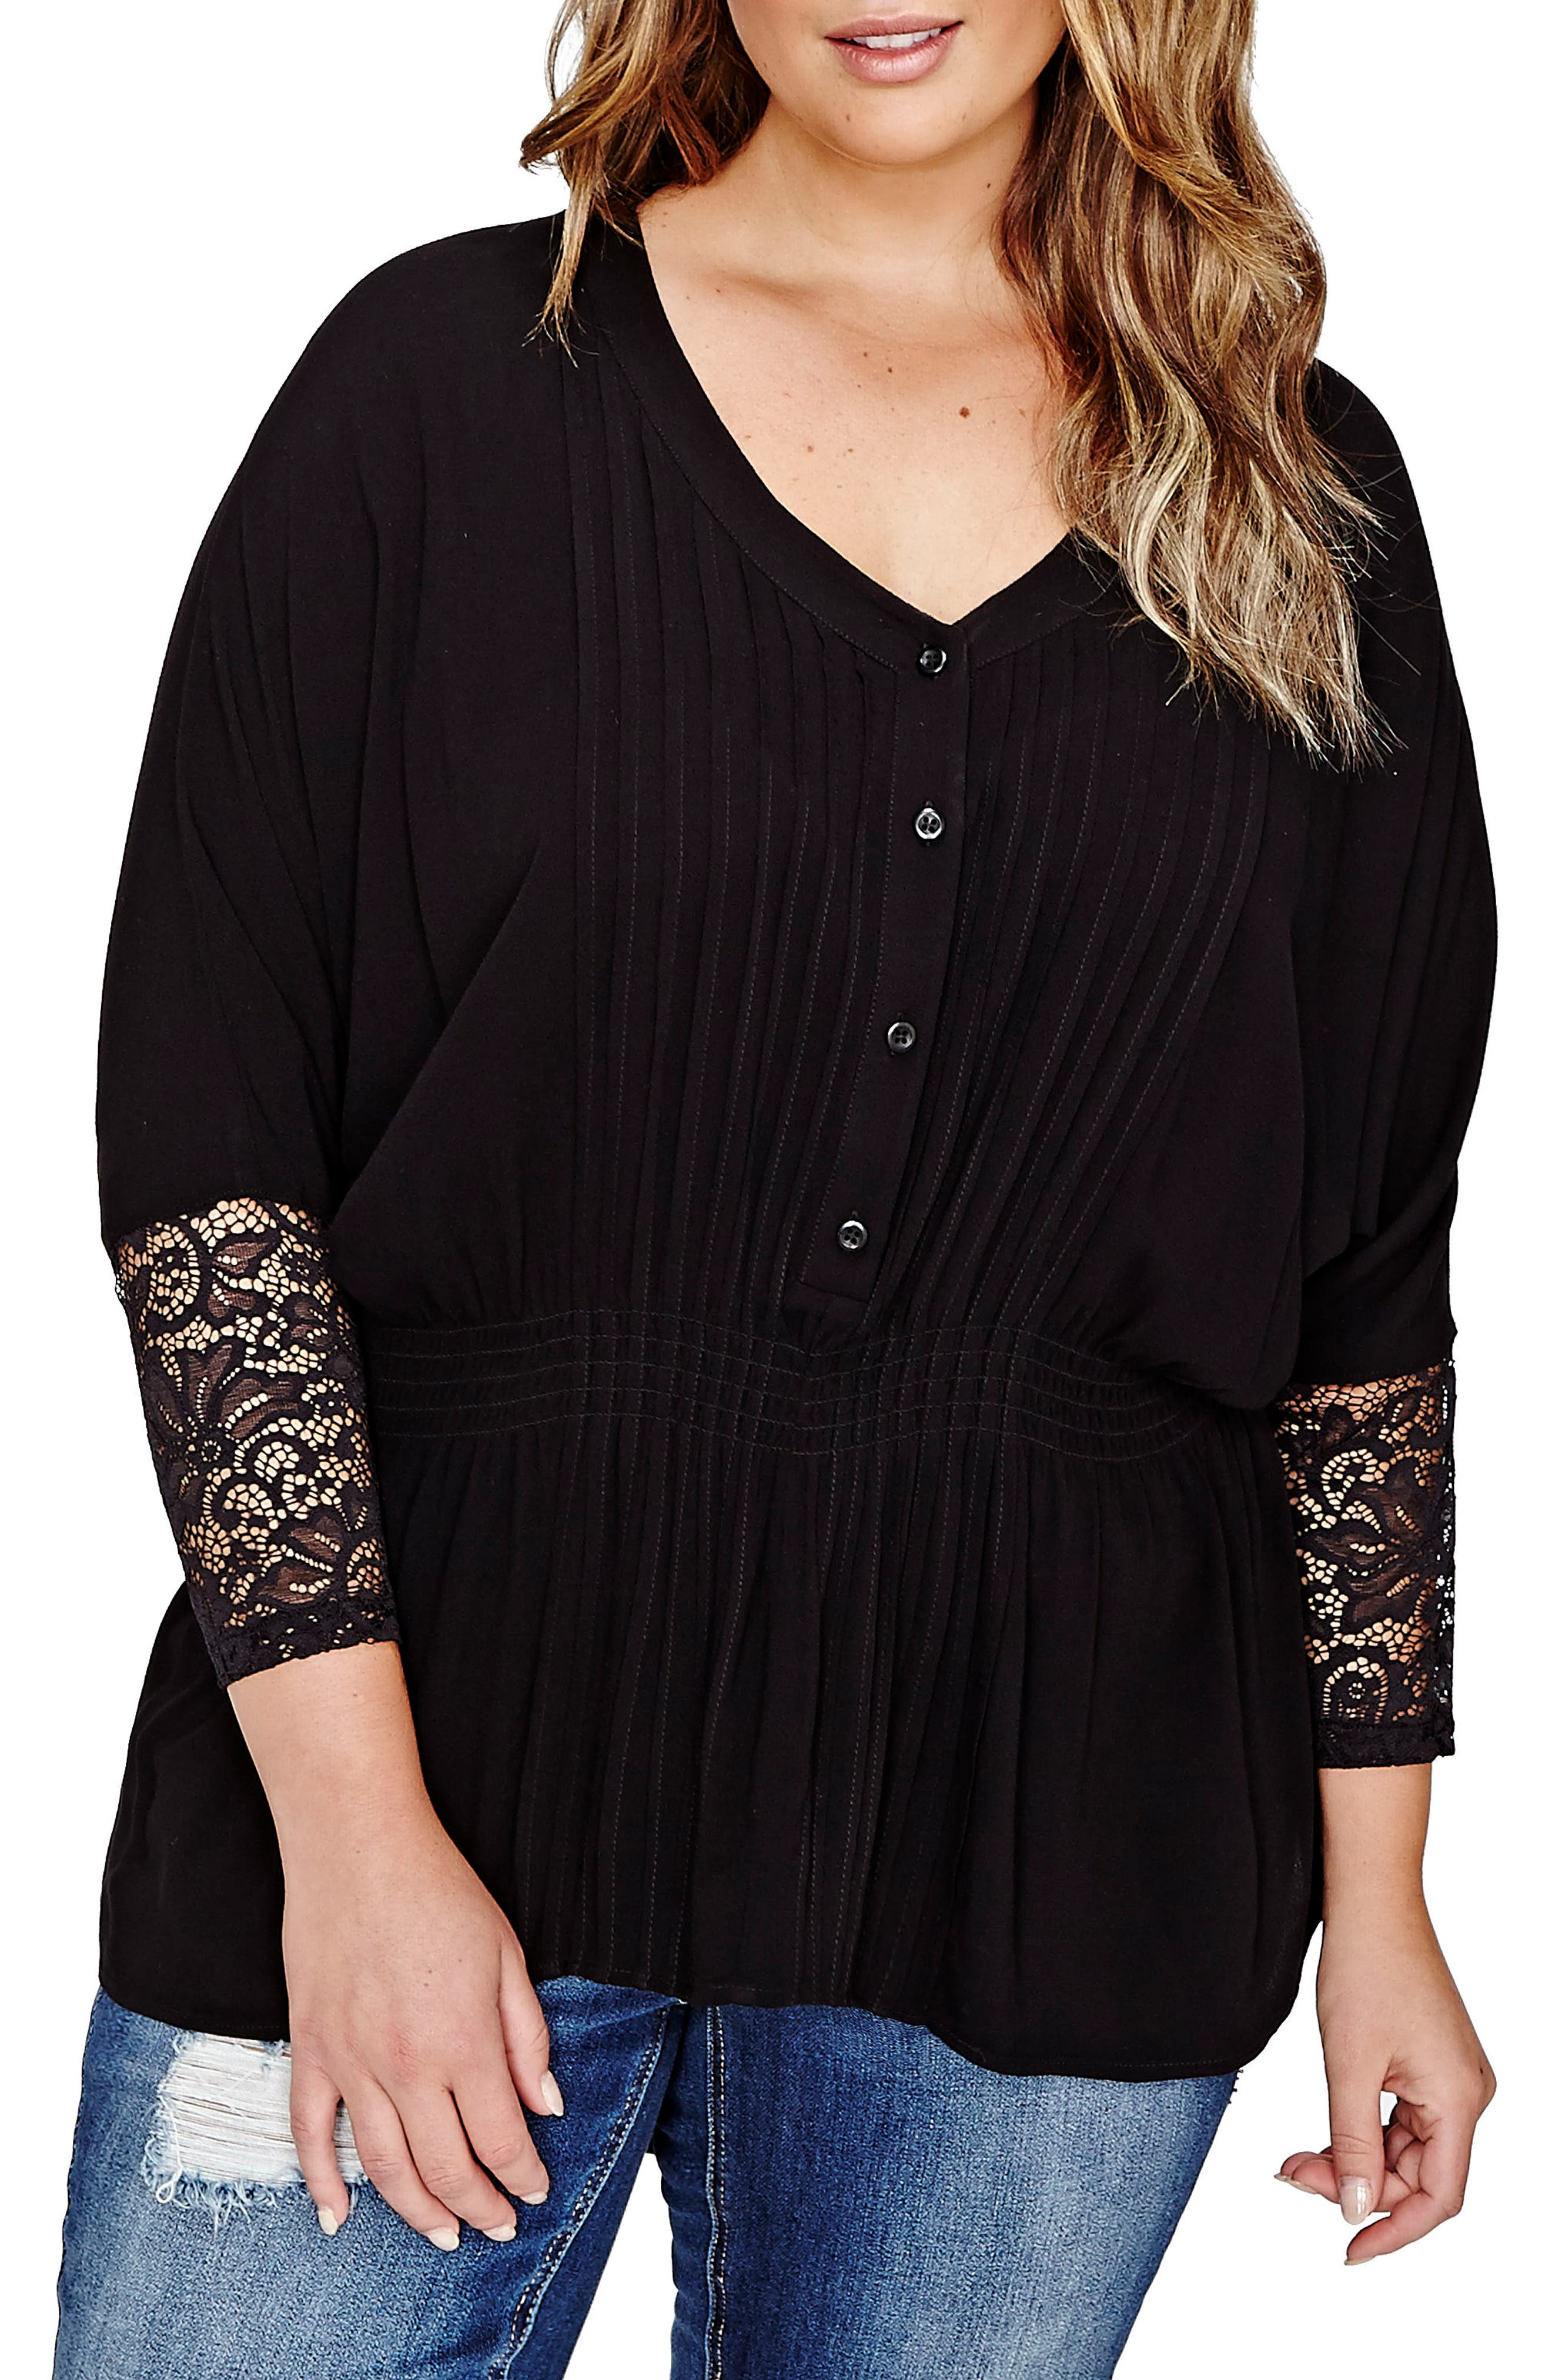 ADDITION ELLE LOVE AND LEGEND Pleated High/Low Dolman Blouse (Plus Size)